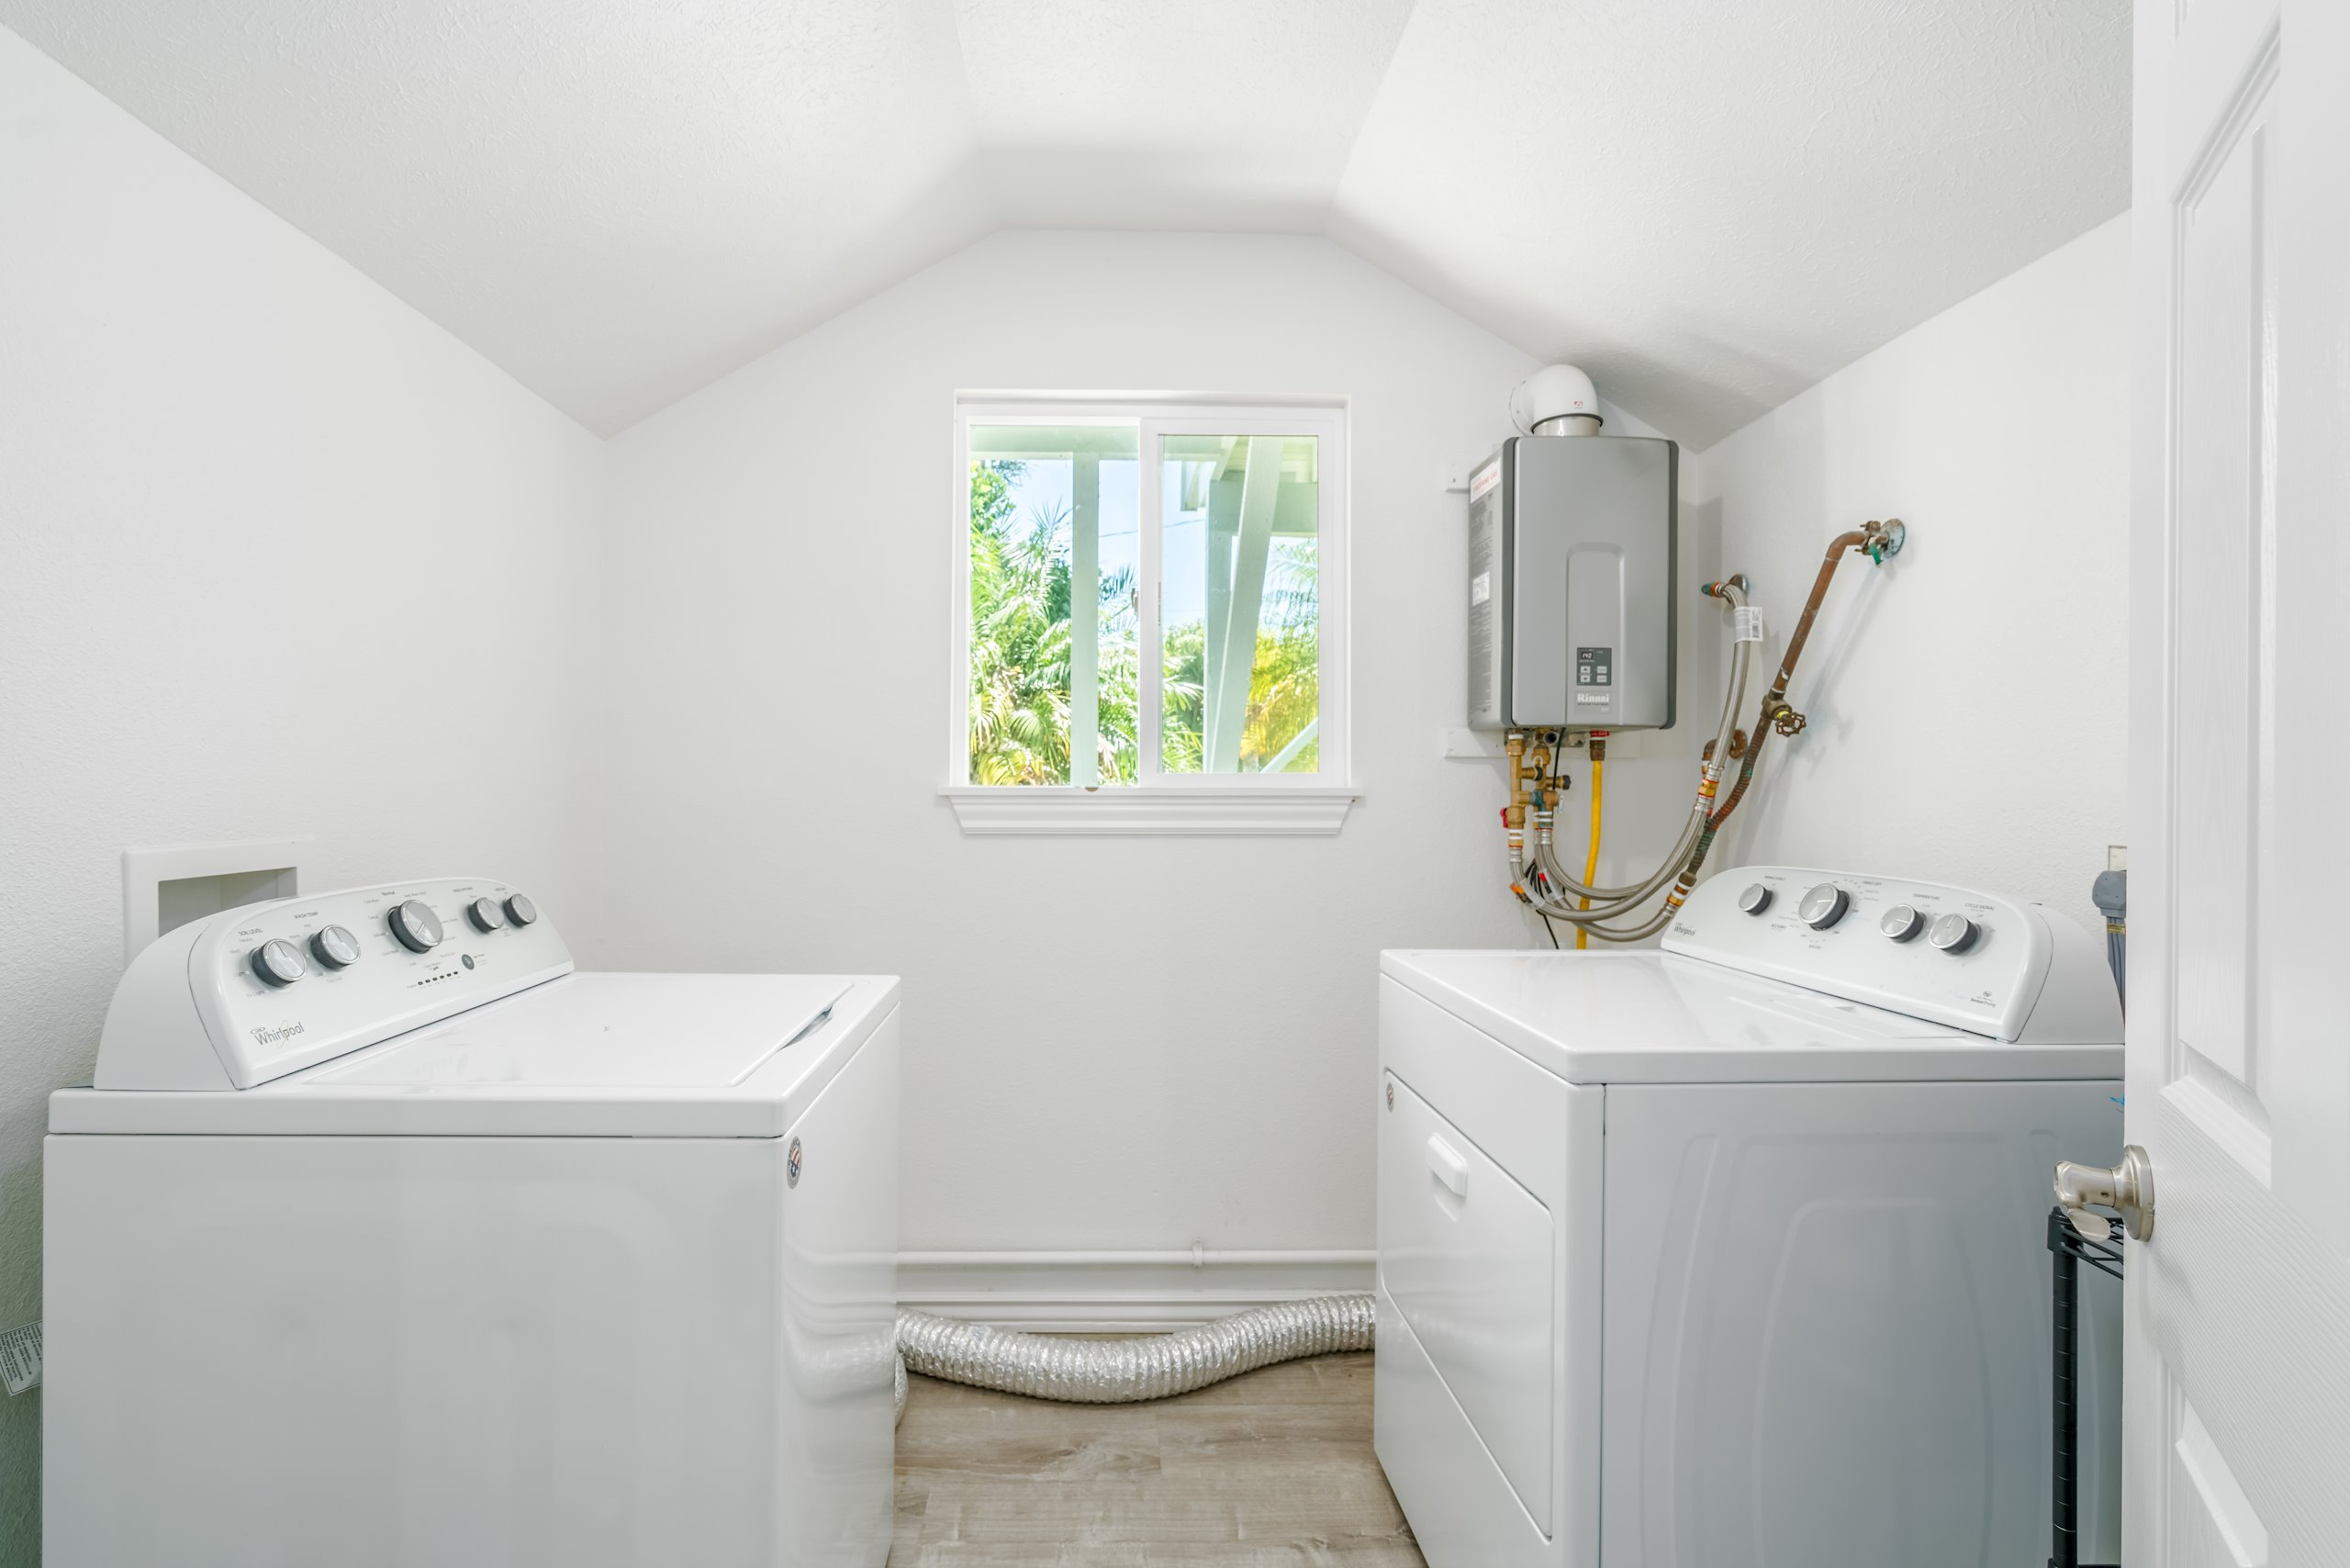 Laundry room downstairs featuring brand new washer/dryer, and on-demand tankless water heater (tanks are right outside)